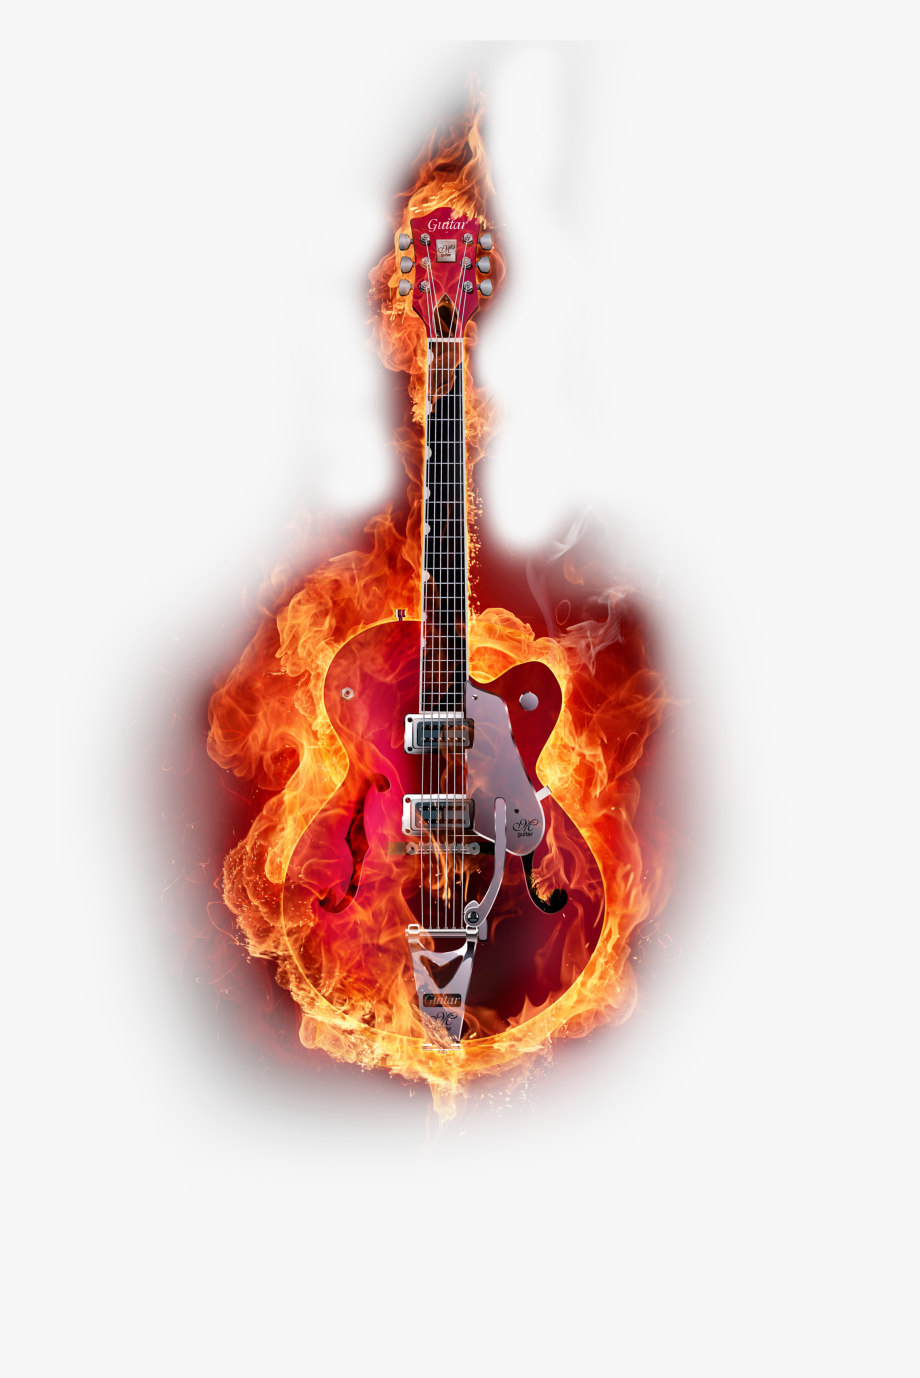 Graphic Instruments Guitar Design Flame Musical.